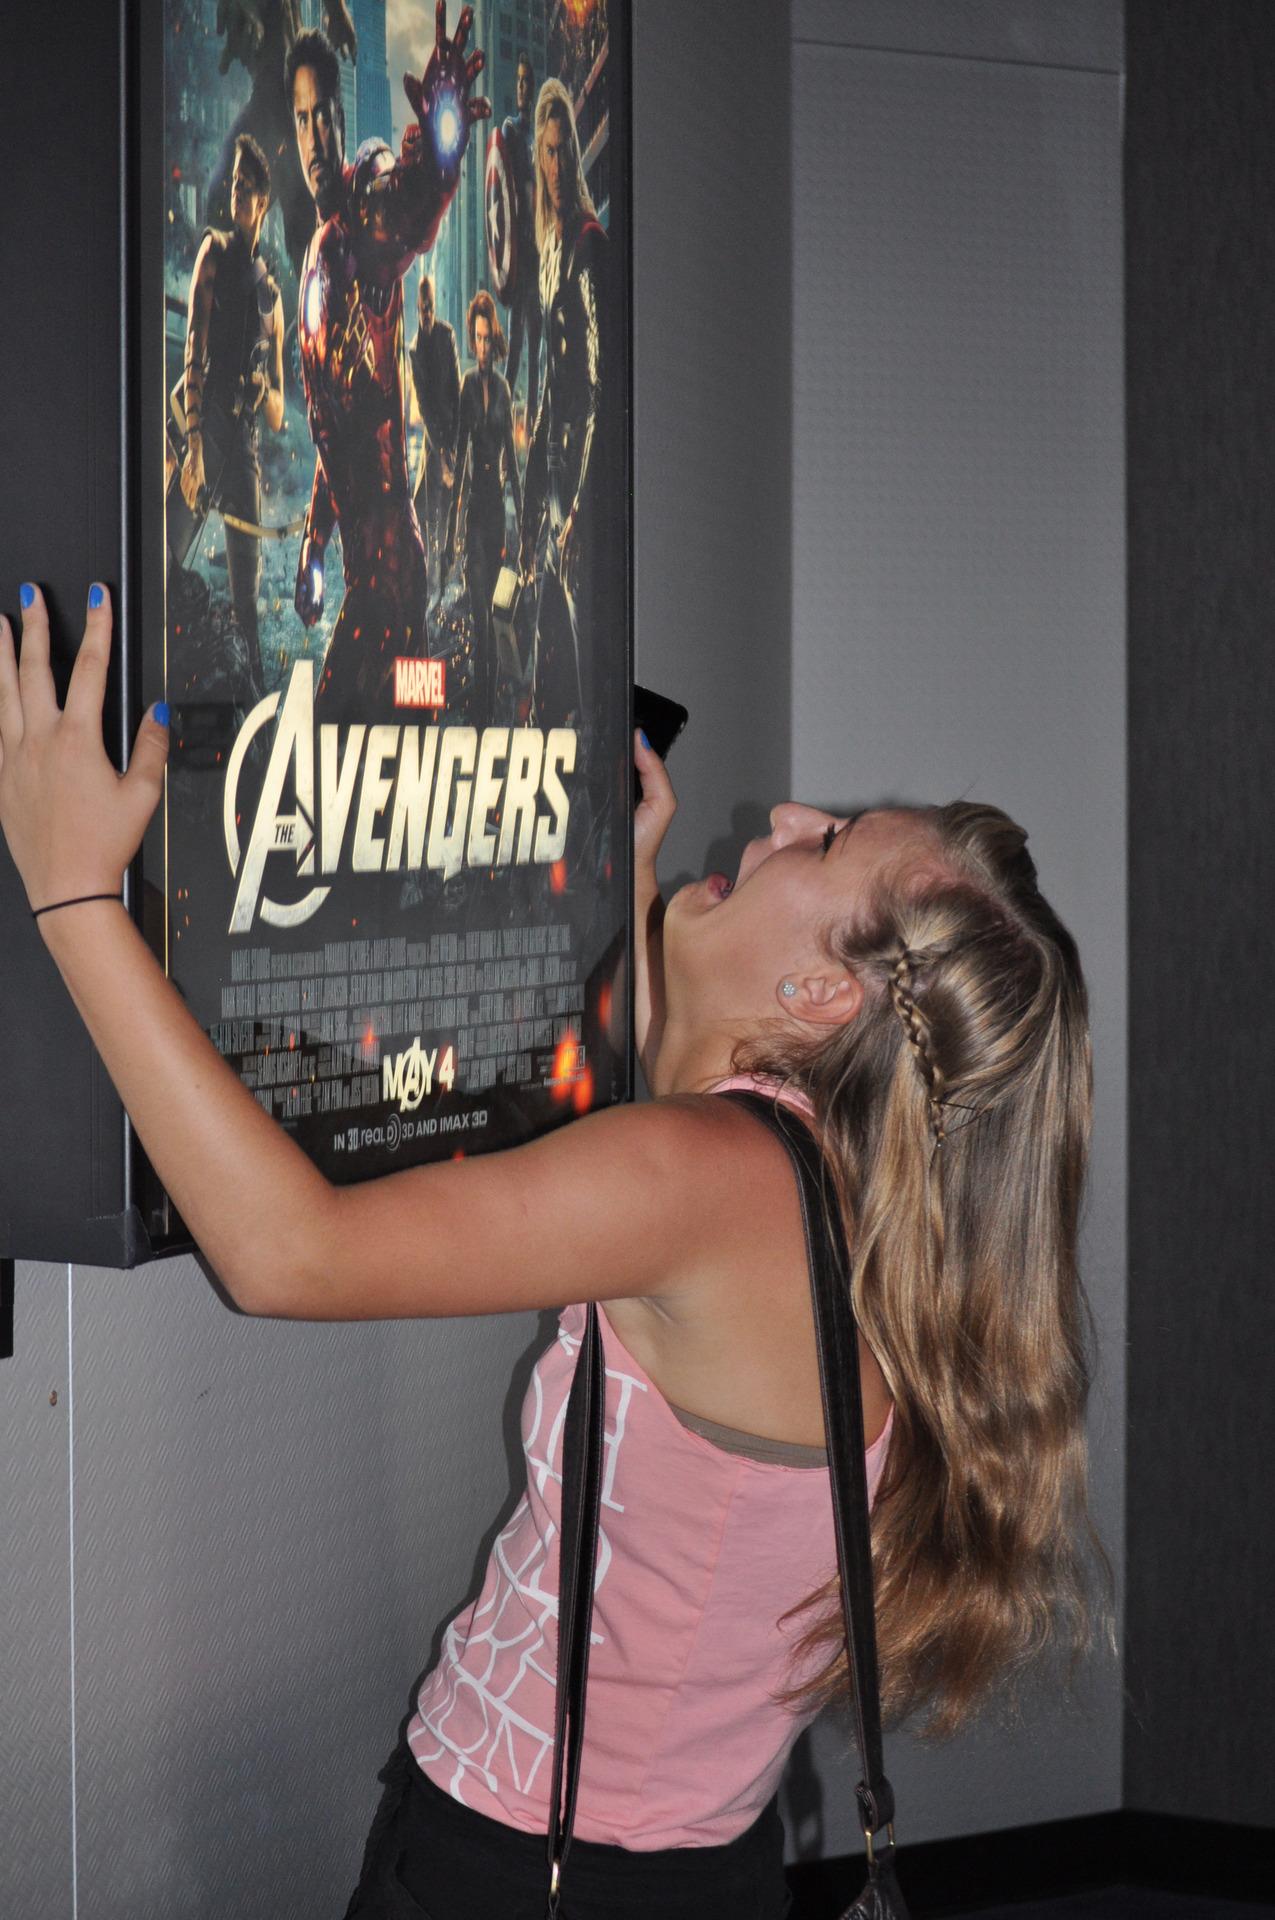 nerdapproved:  And here we see the fangirl in her natural habitat.